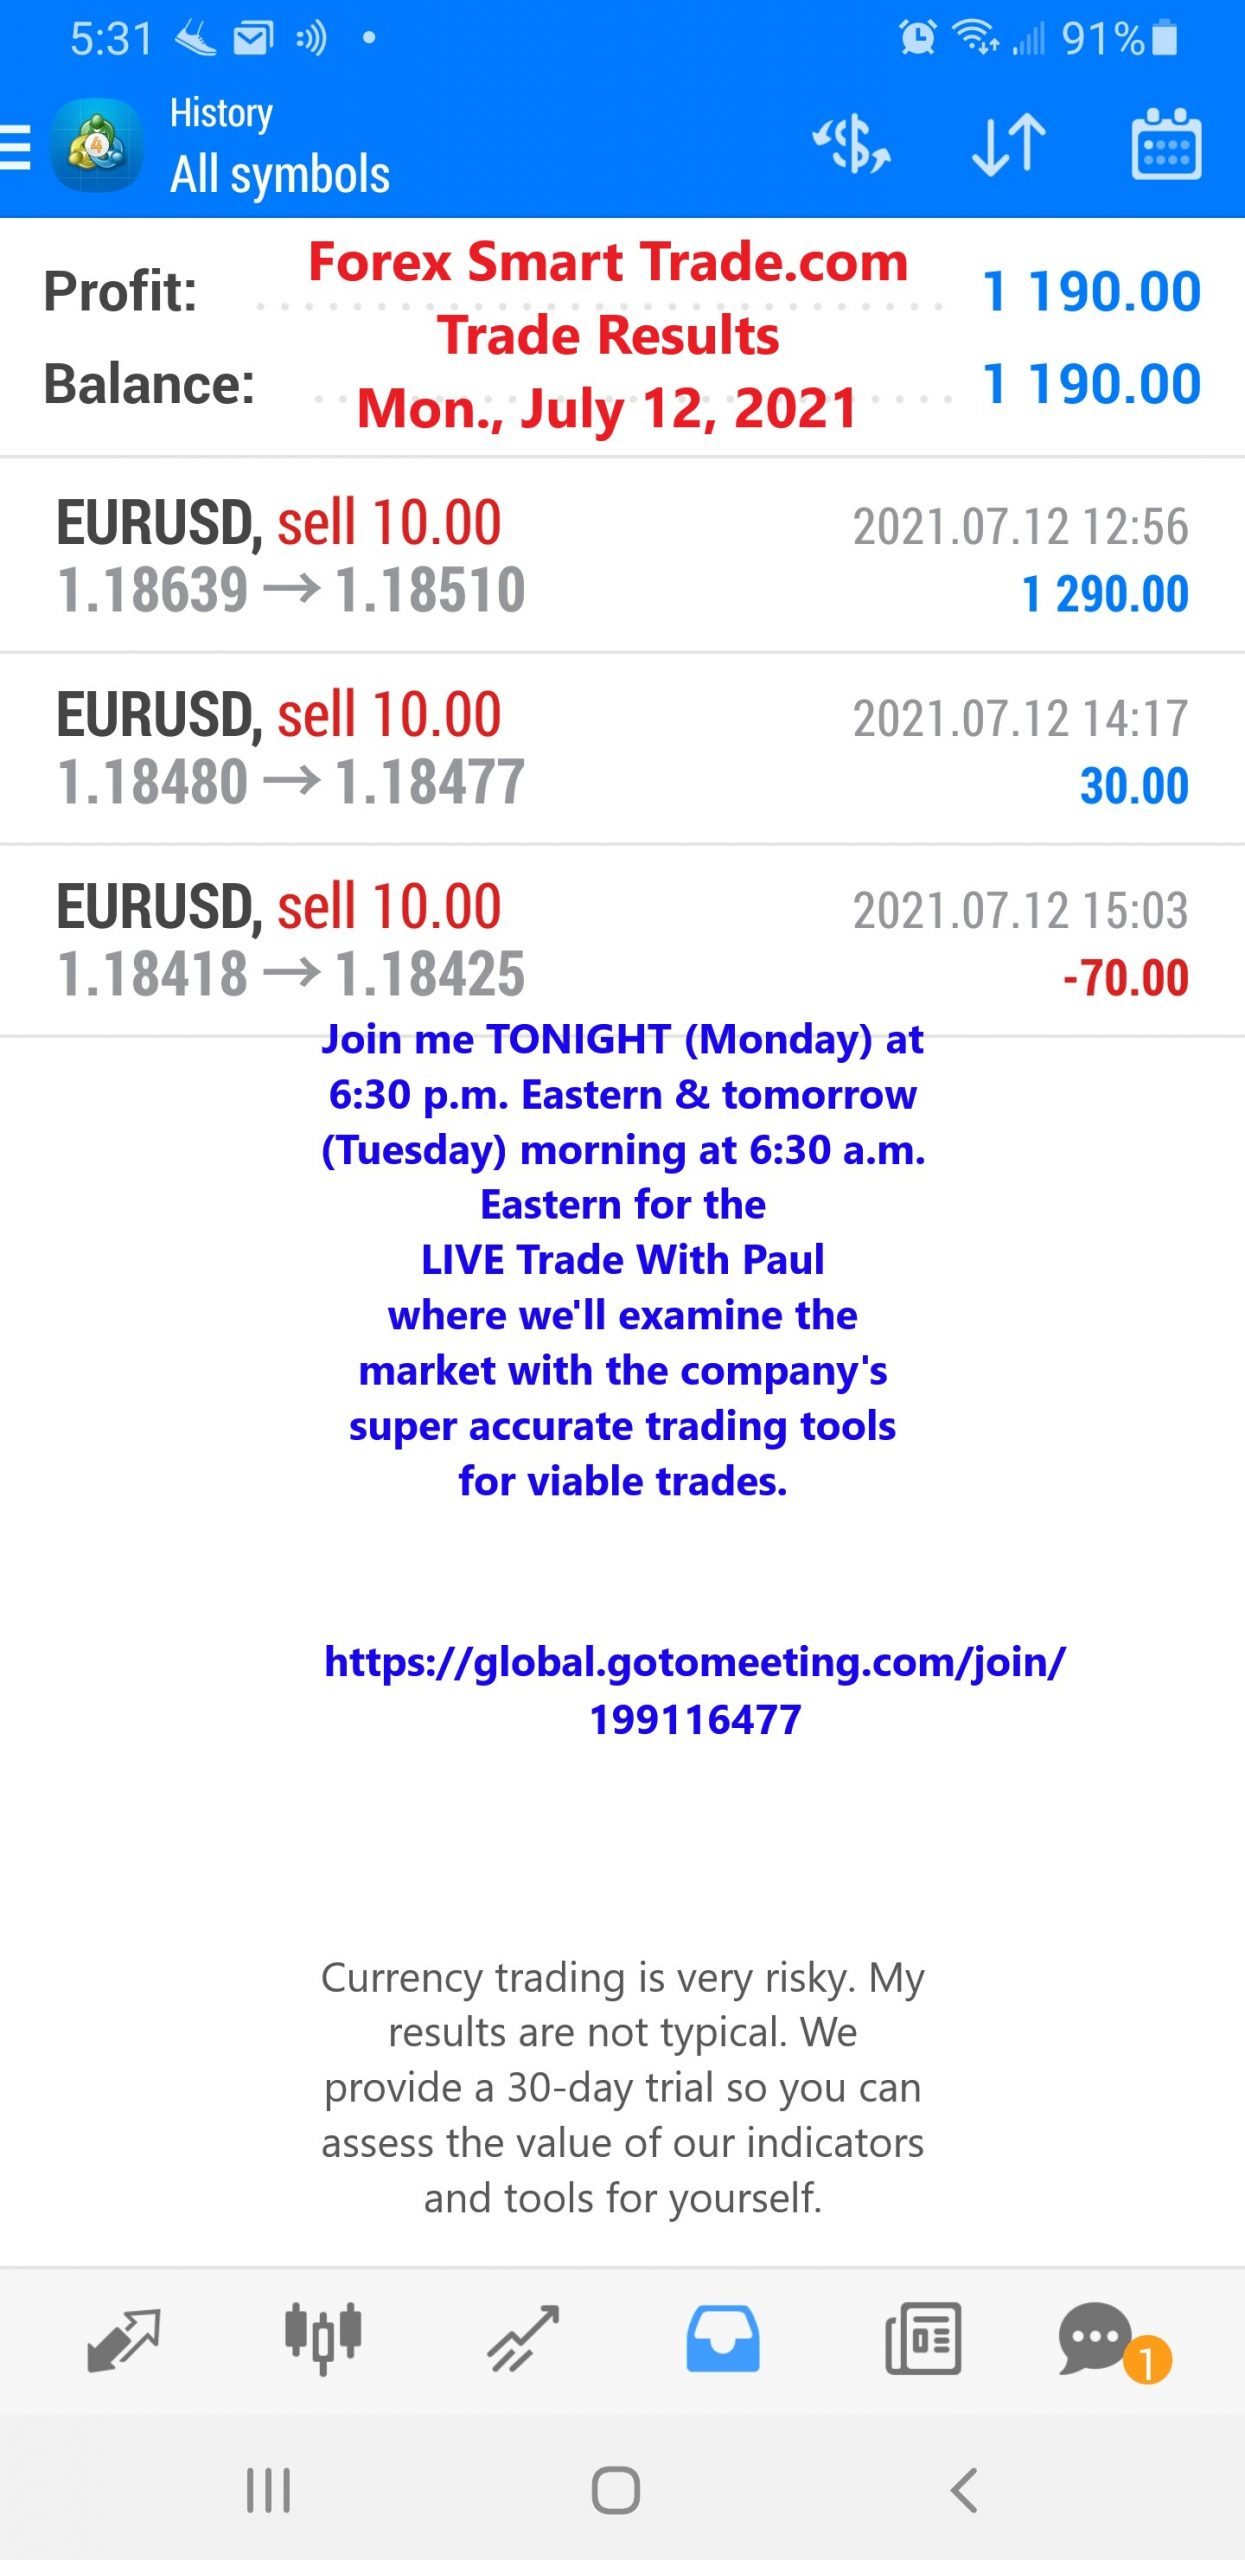 Forex Smart Trade Daily Trade Results, Today, Monday, July 12, 2021